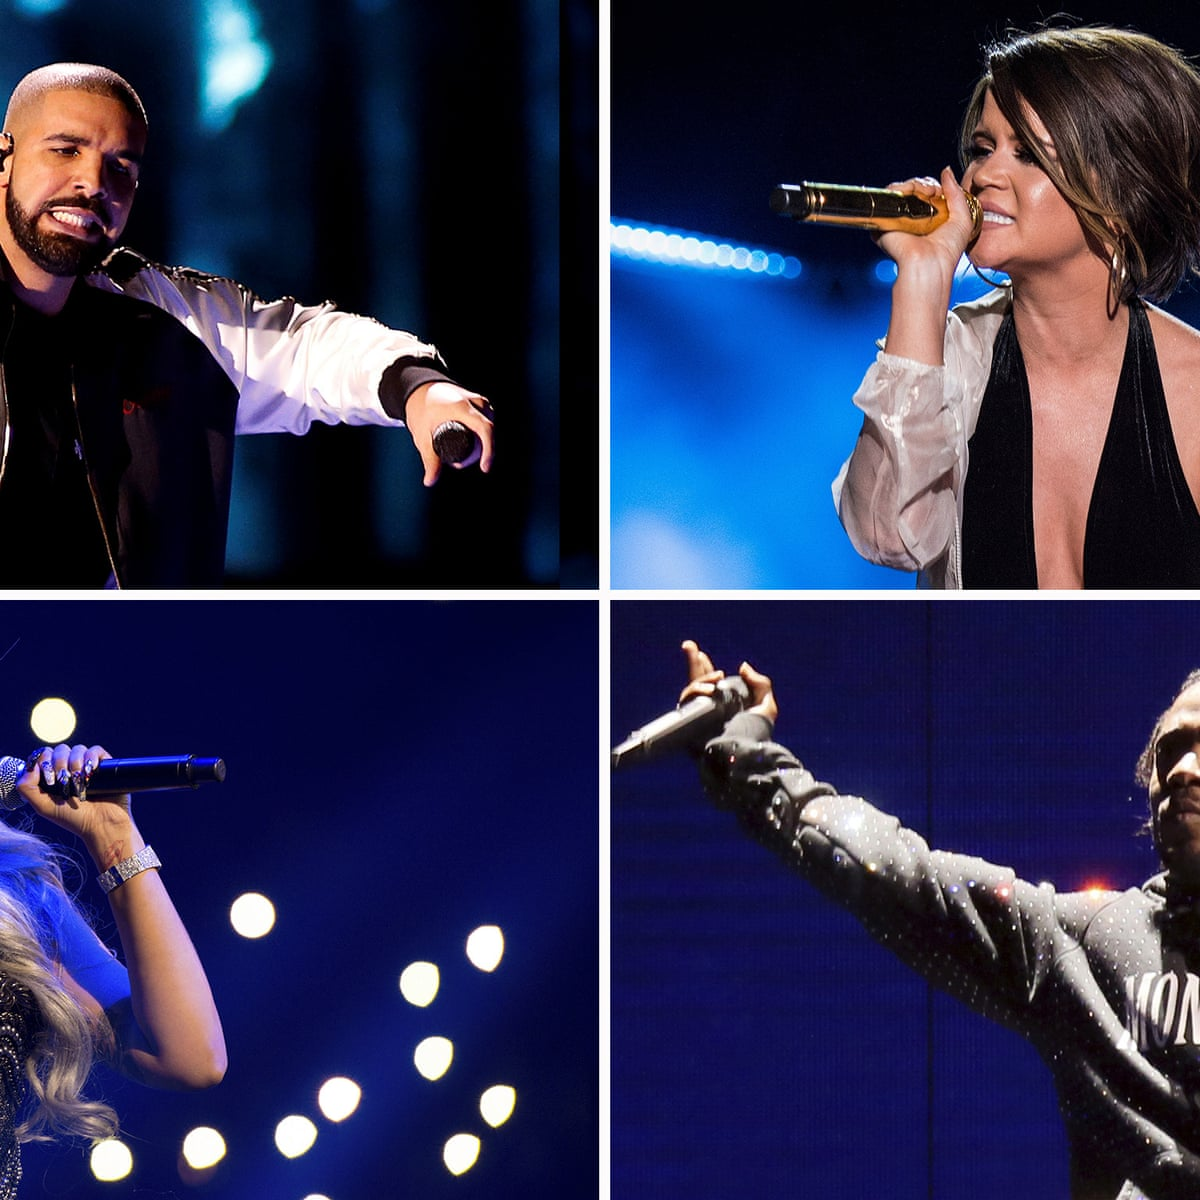 grammy nominations 2019 cardi b kendrick lamar and drake lead the pack grammys the guardian grammy nominations 2019 cardi b